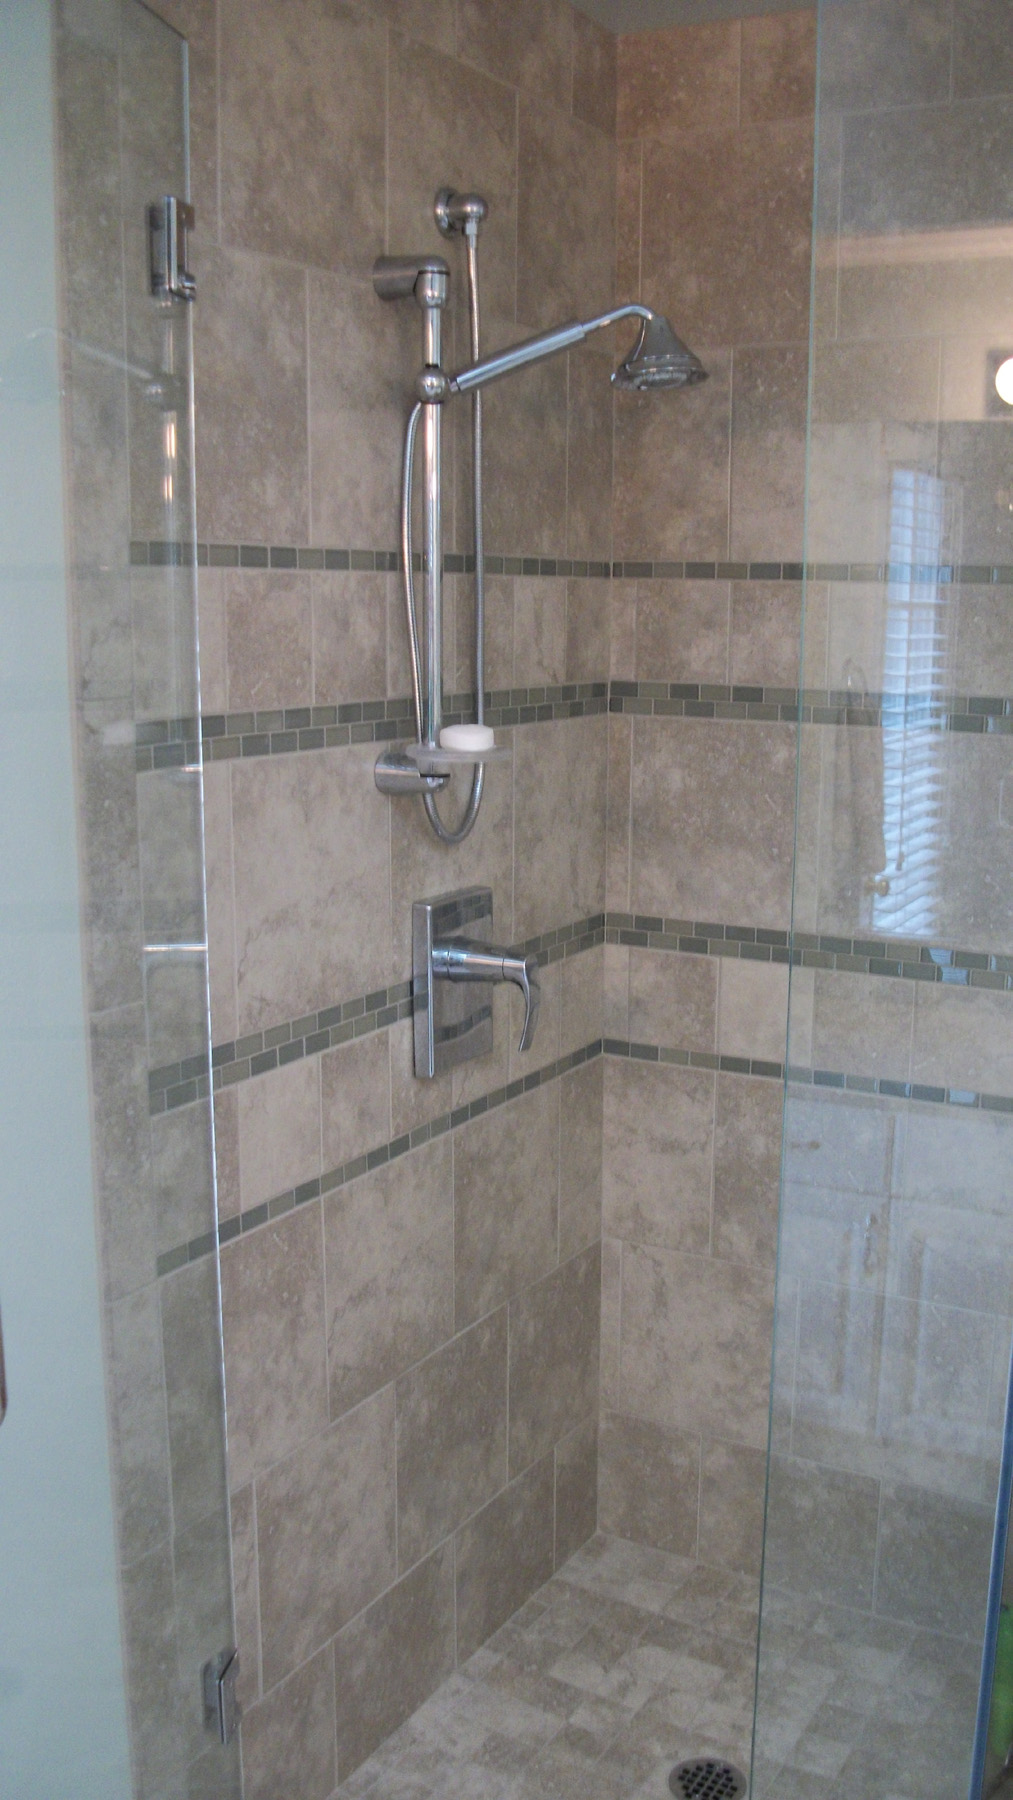 Bathroom Tile Construction : Bath remodel featuring schon free standing tub notes